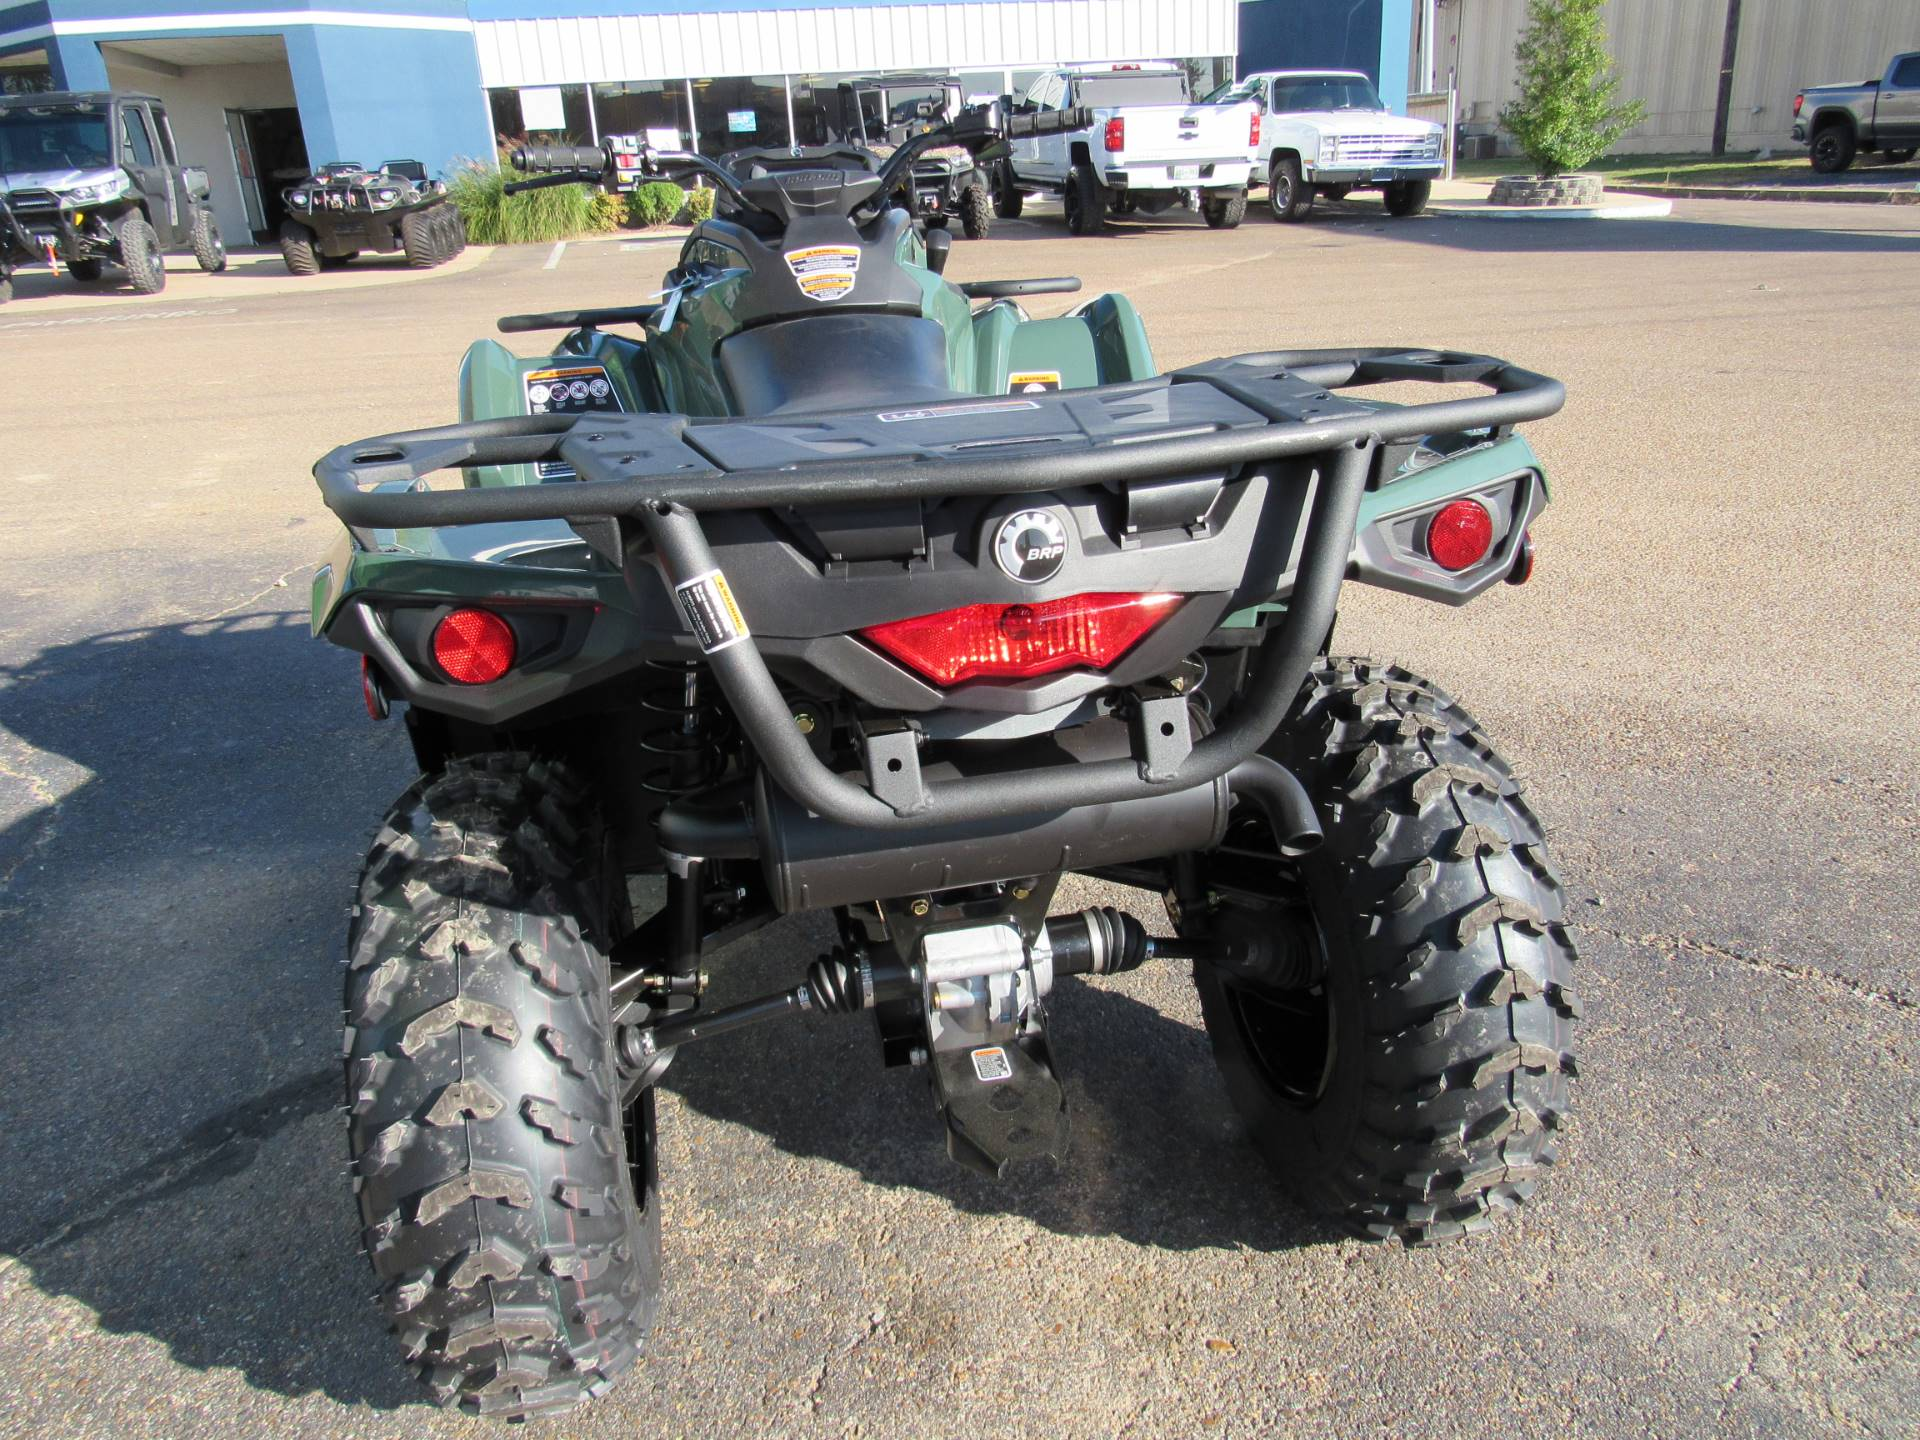 2021 Can-Am Outlander DPS 570 in Dyersburg, Tennessee - Photo 5